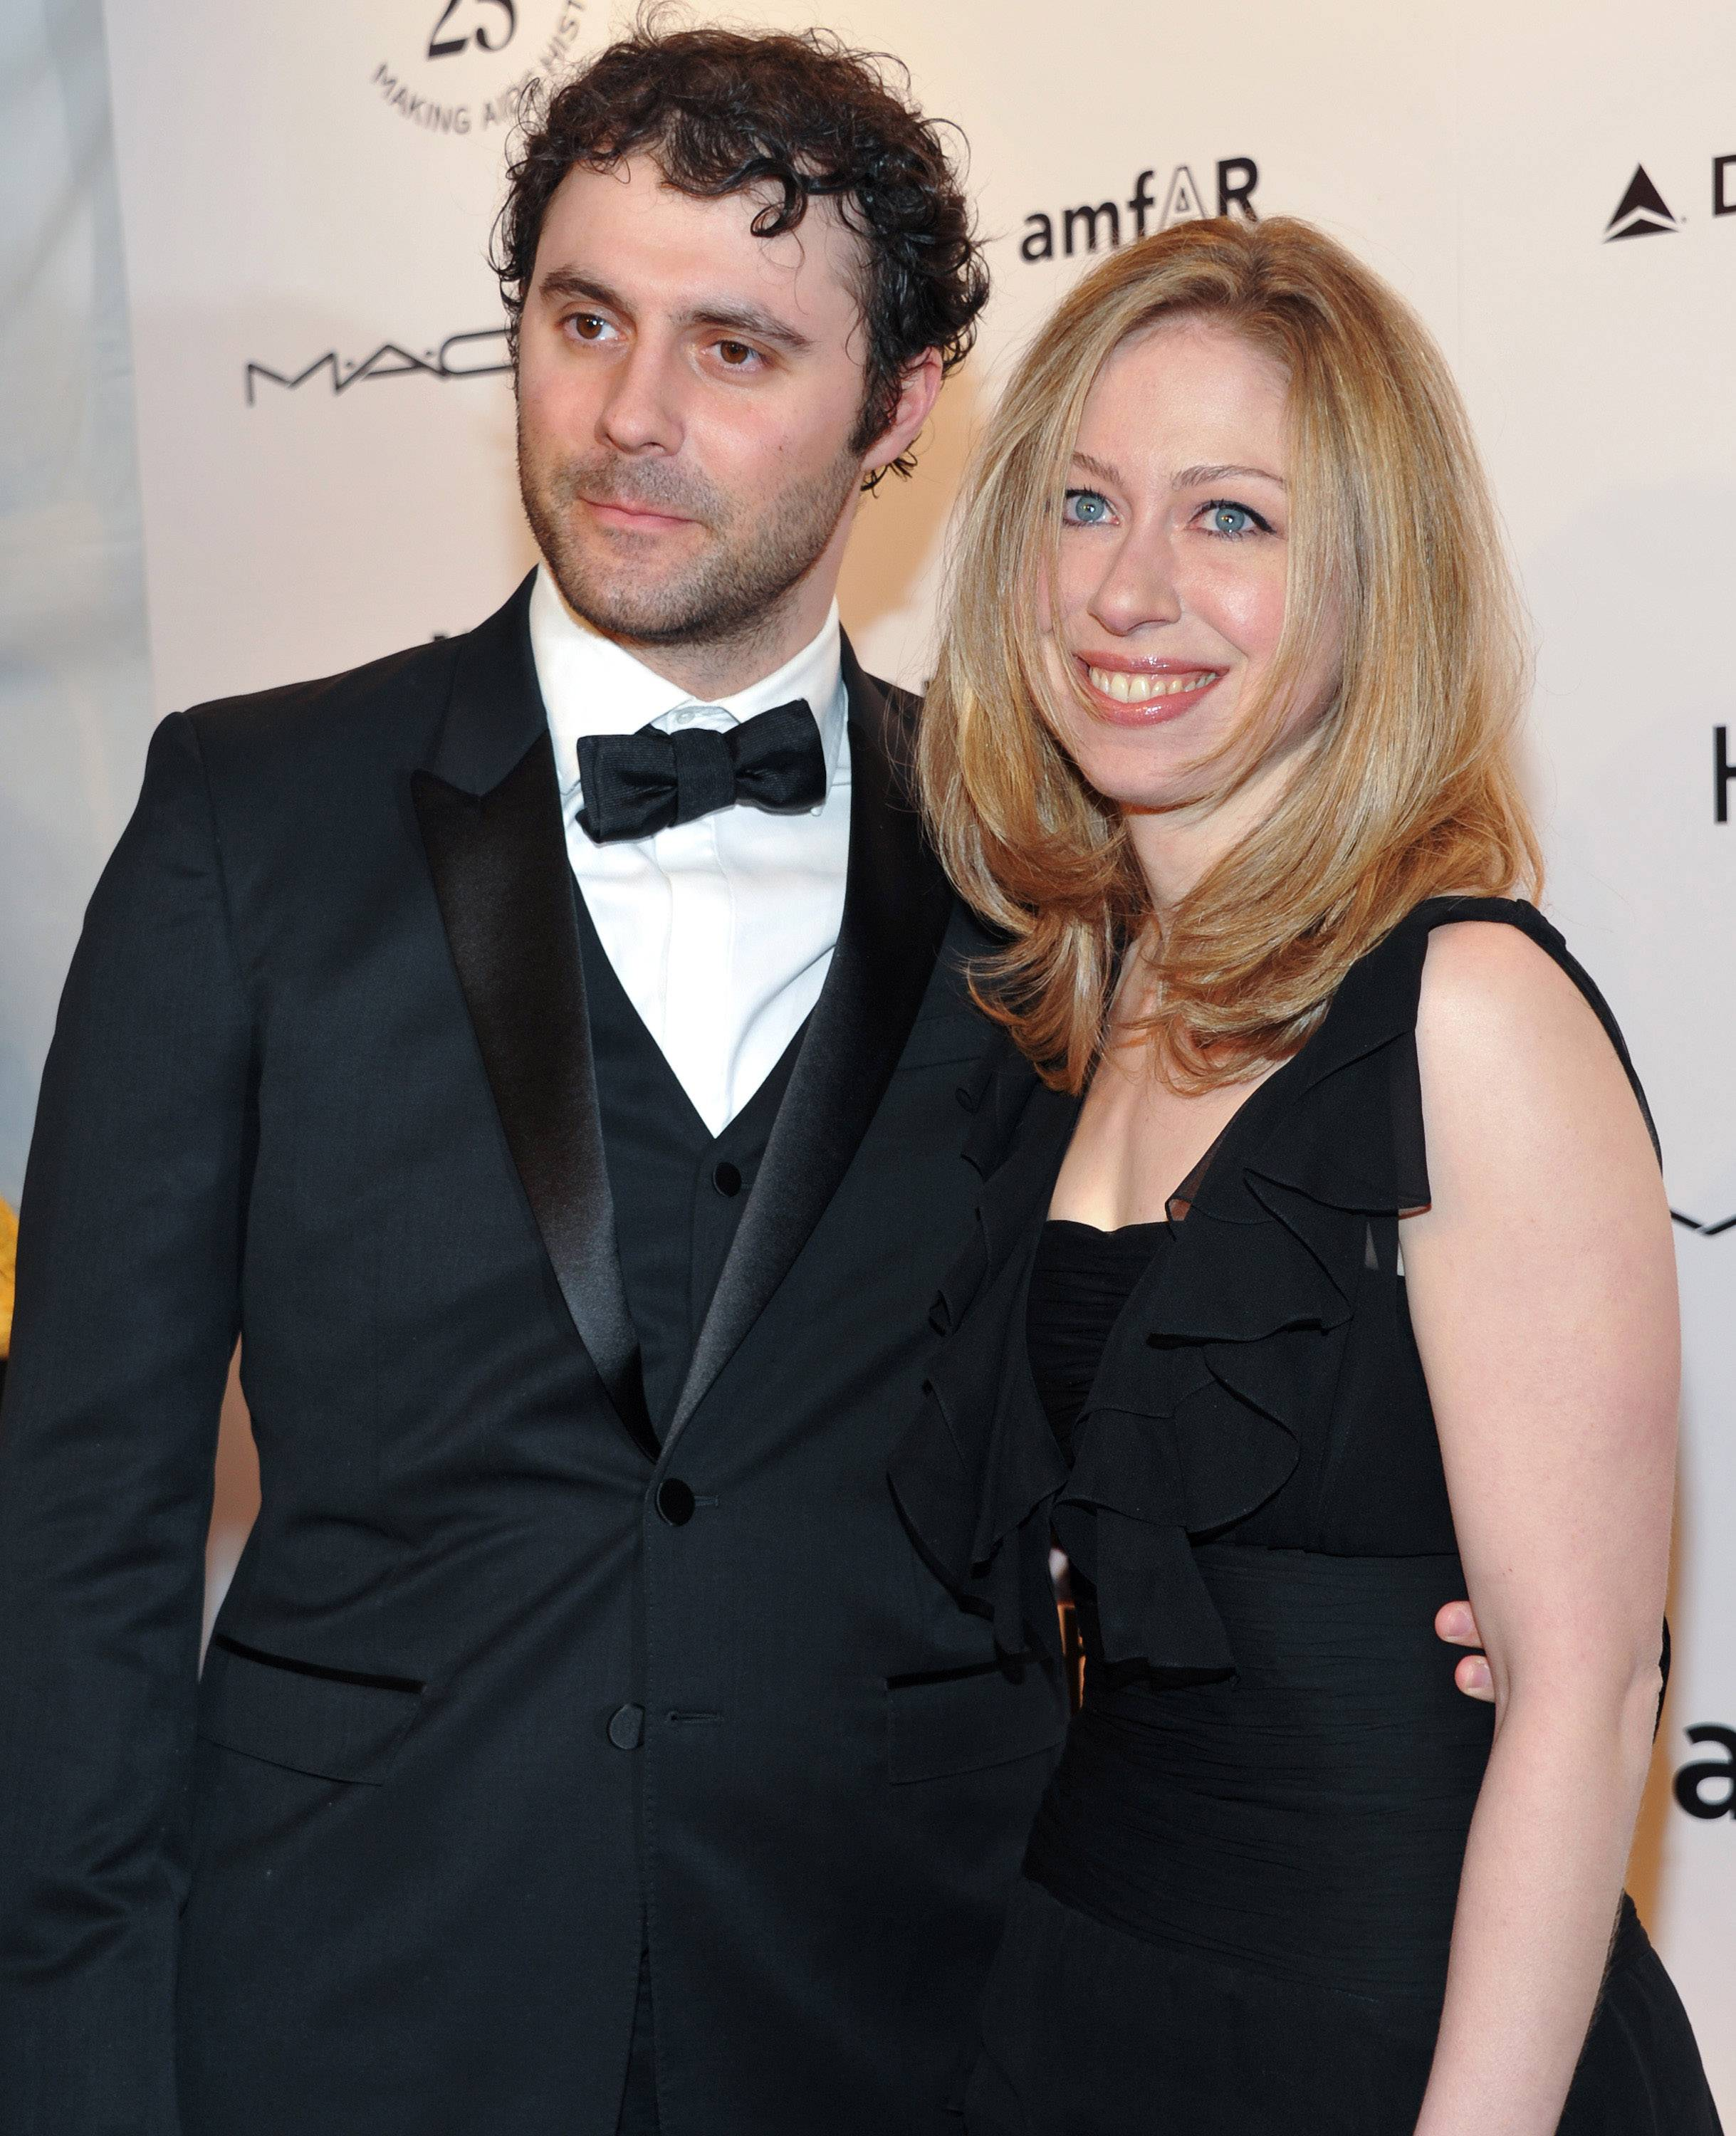 Chelsea Clinton and her husband, Marc Mezvinsky, in 2011.